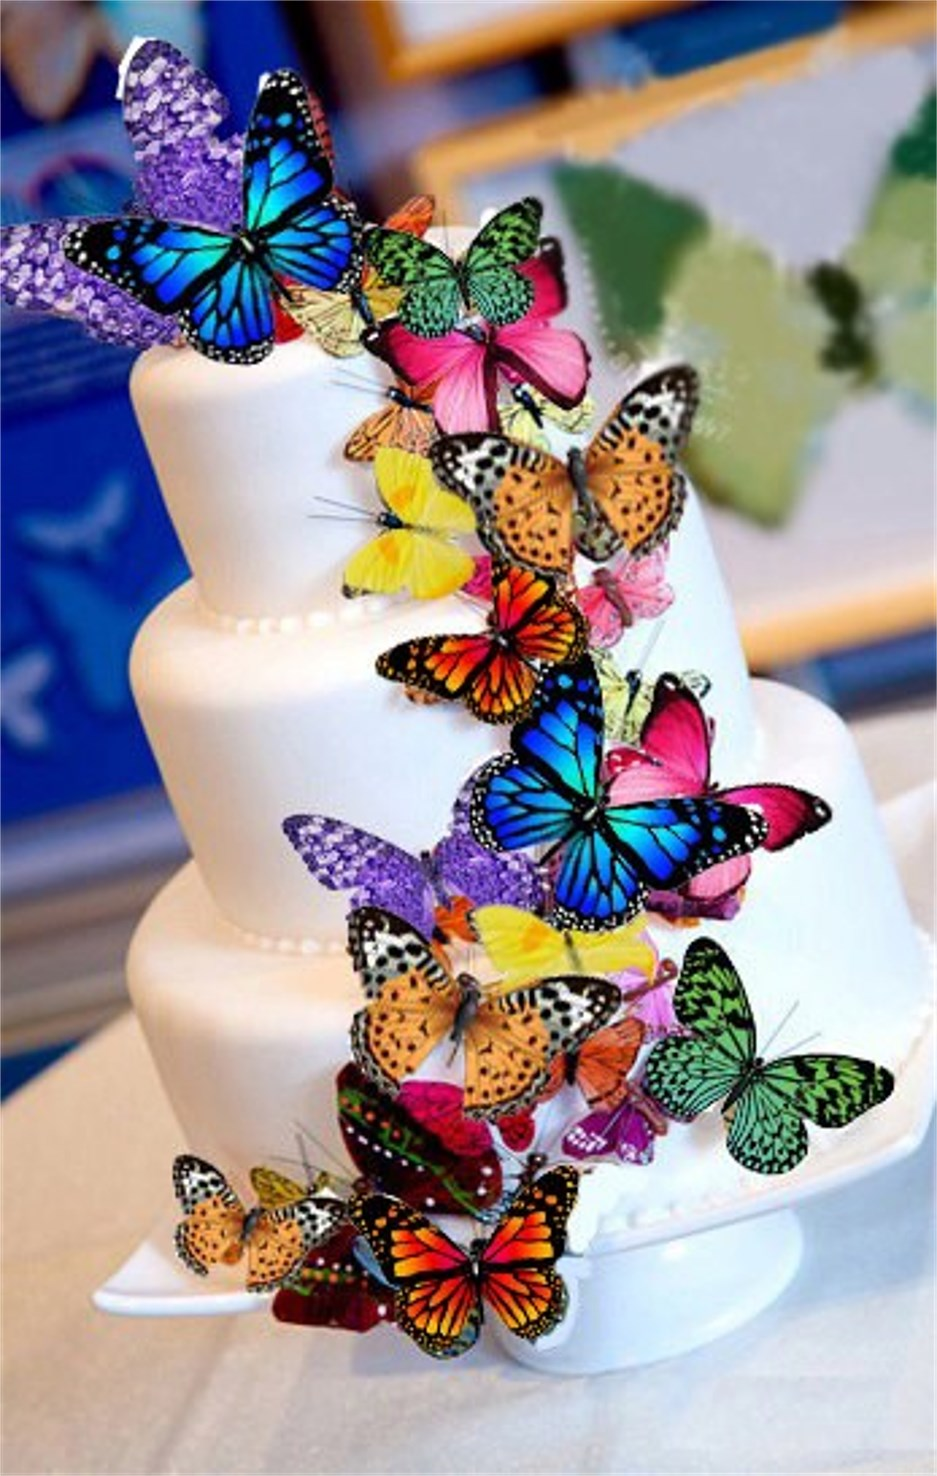 Cake Decorations Edible Photos : Aliexpress.com : Buy Big mixed Butterfly Edible cake ...